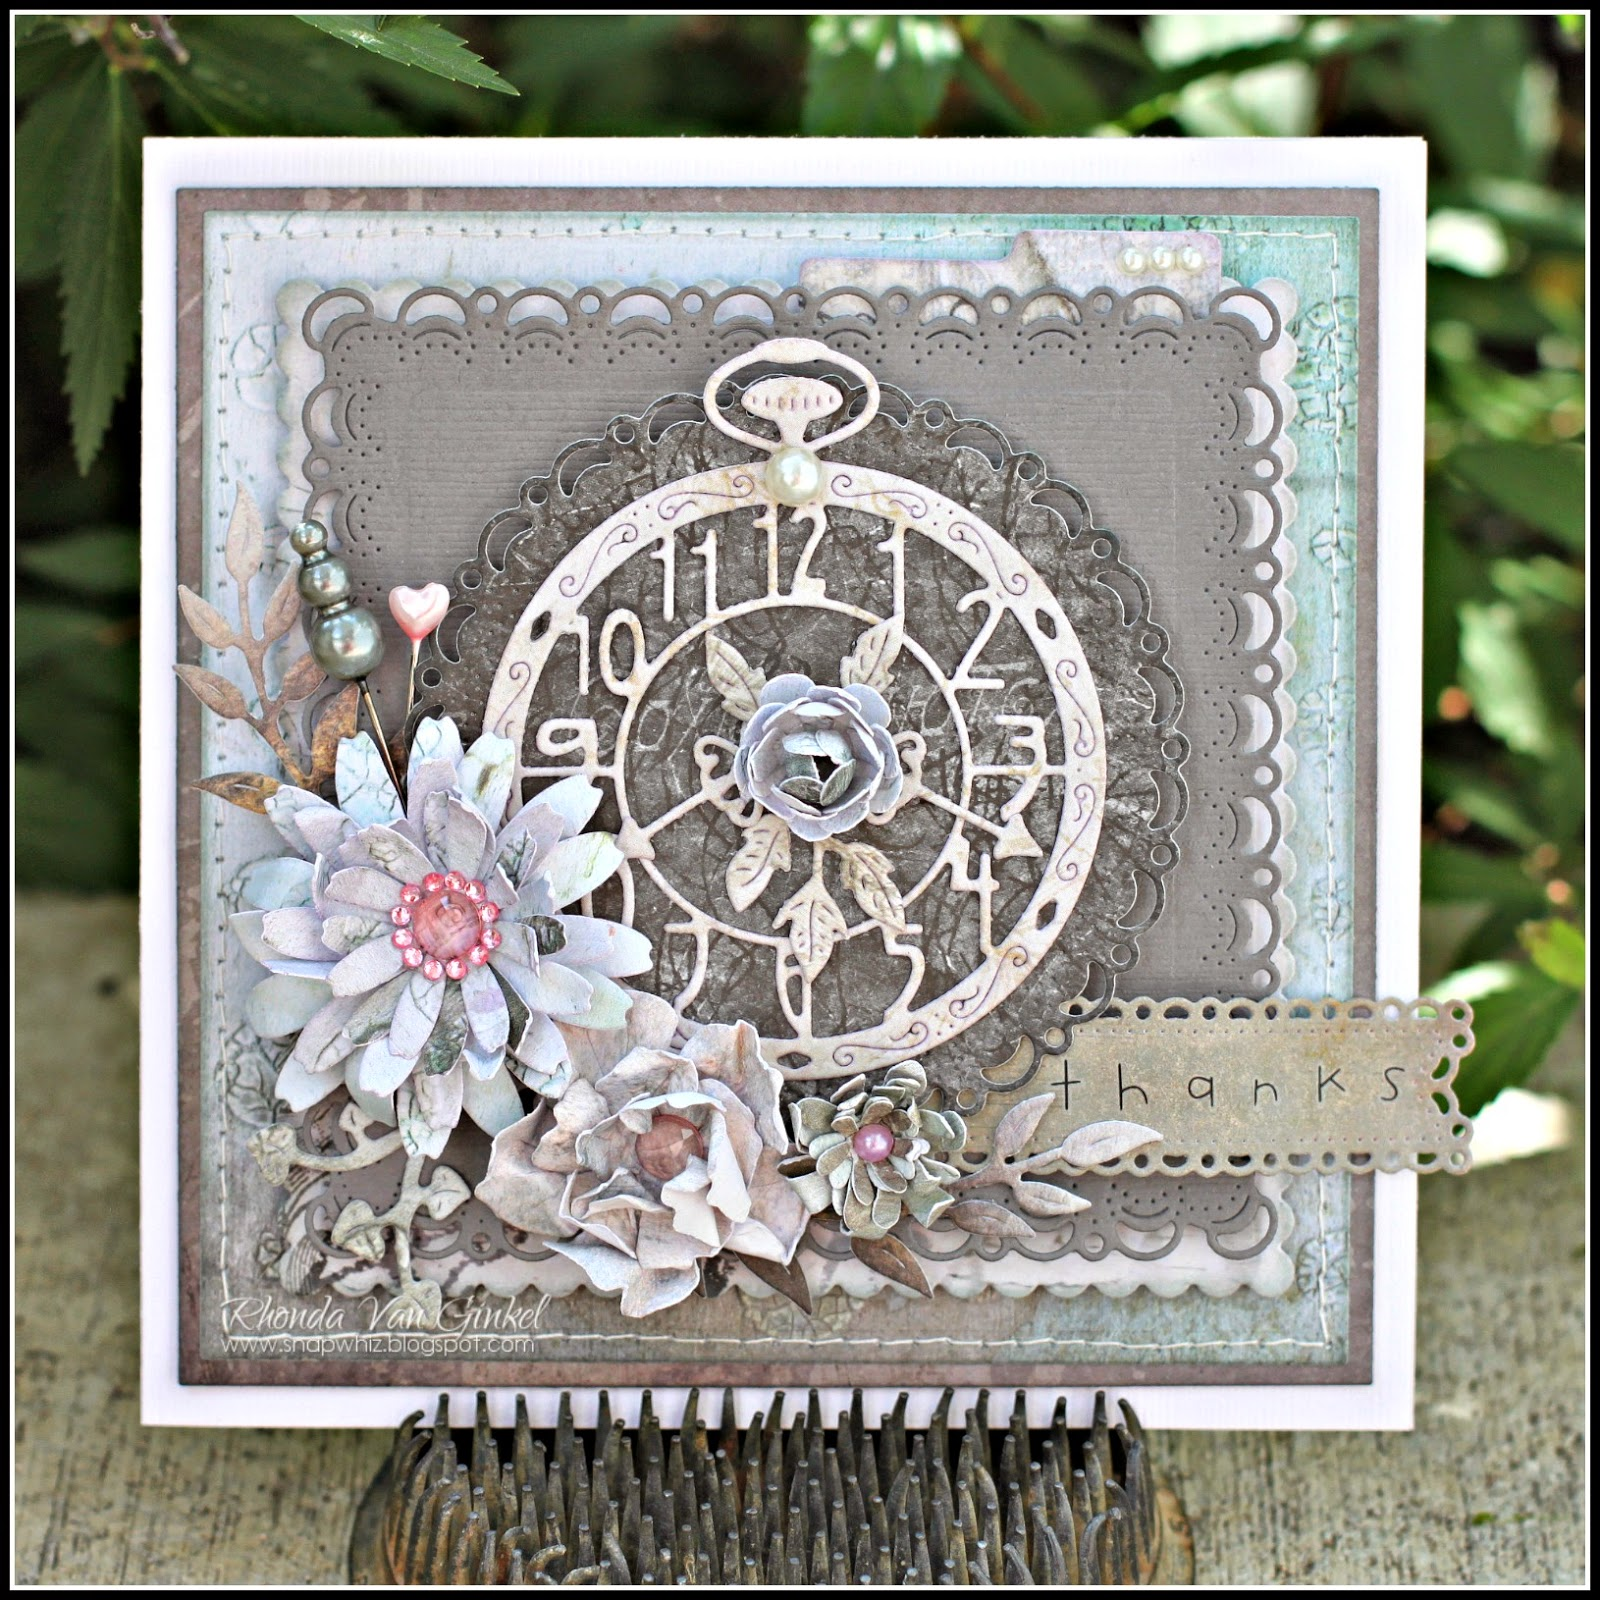 http://snapwhiz.blogspot.com/2014/08/romantic-steampunk-with-cheery-lynn.html